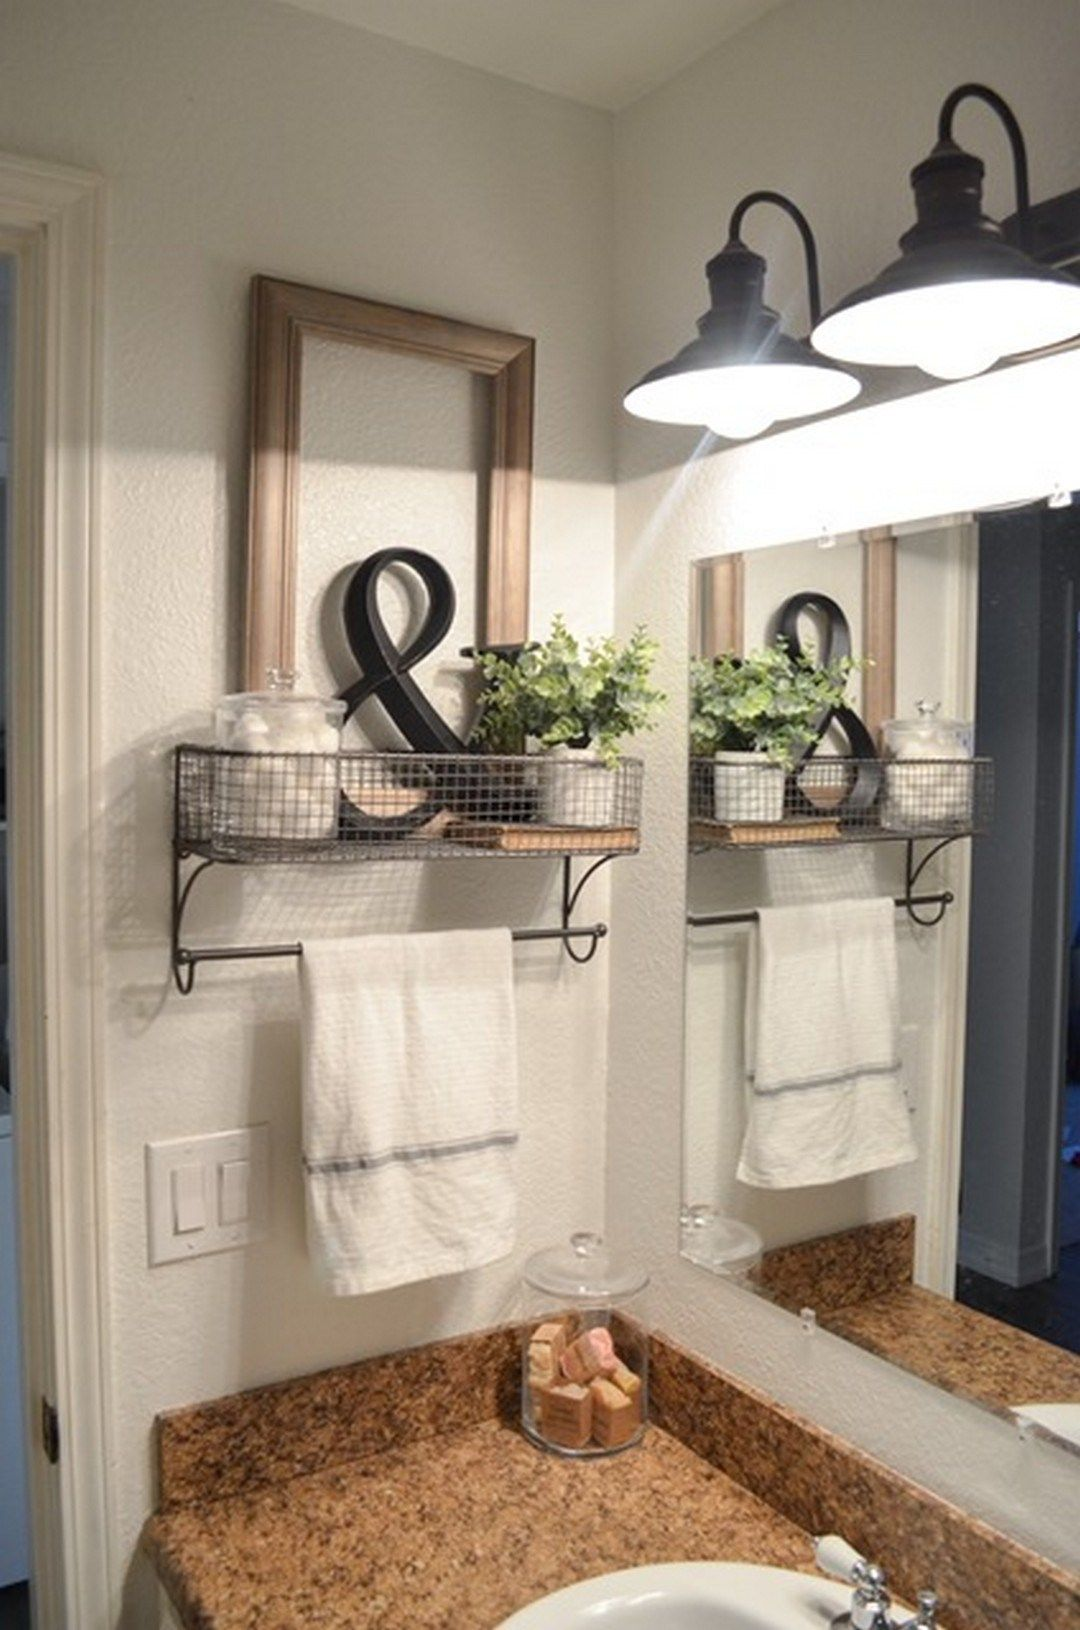 Farmhouse Style Decorating Ideas 99 More Incredible Photos (18) | My ...